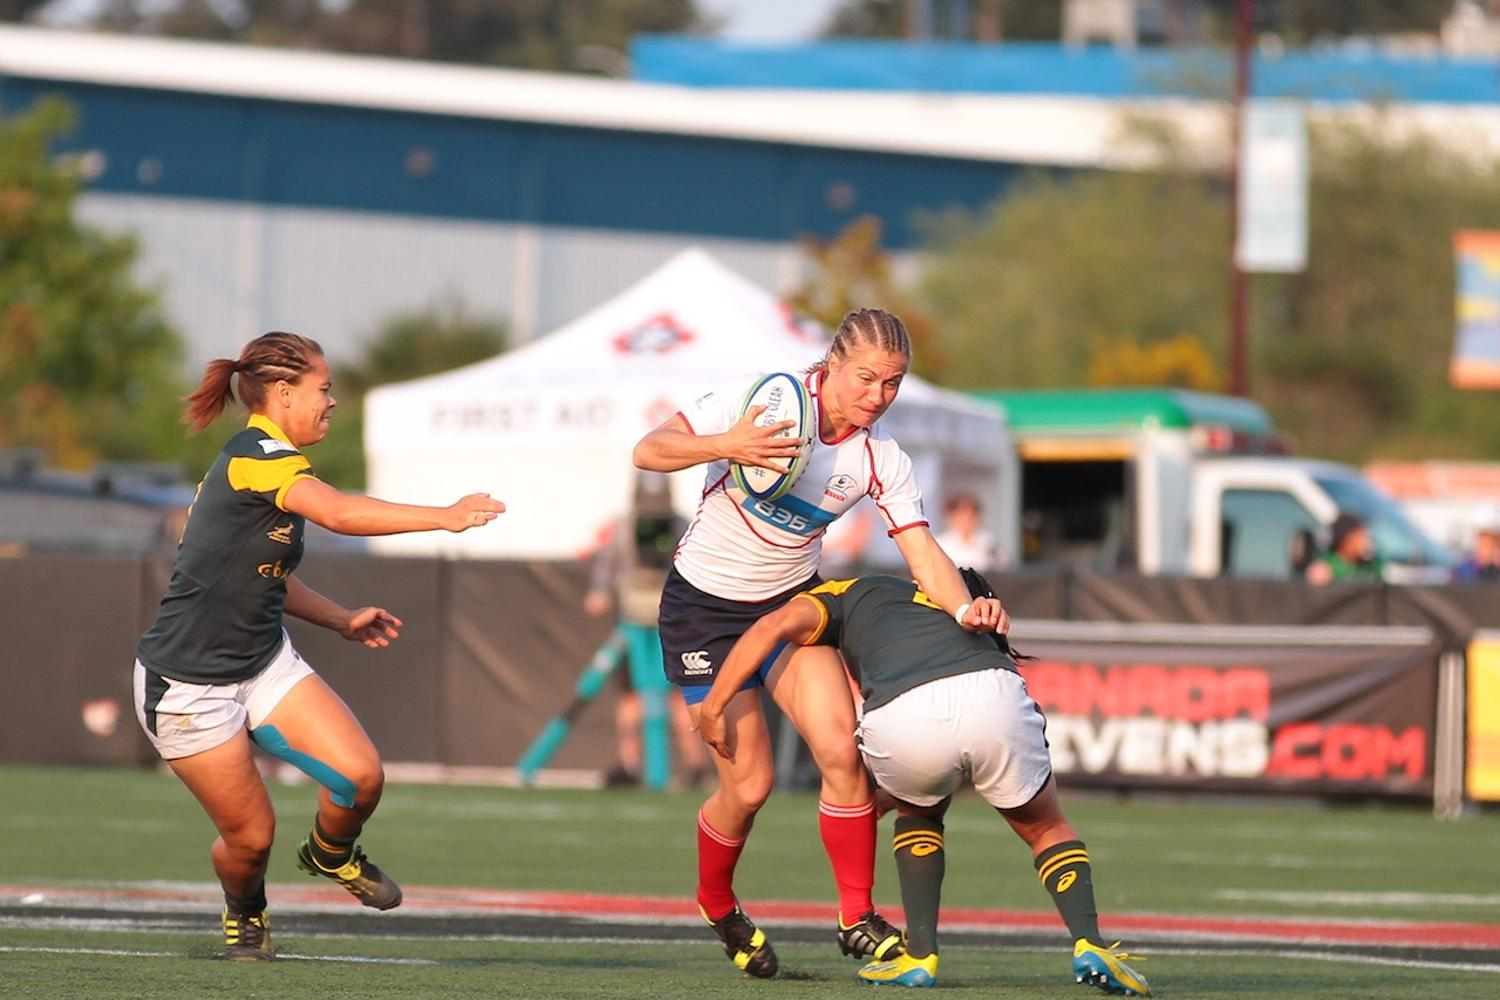 Women's Sevens Series: Russia v South Africa